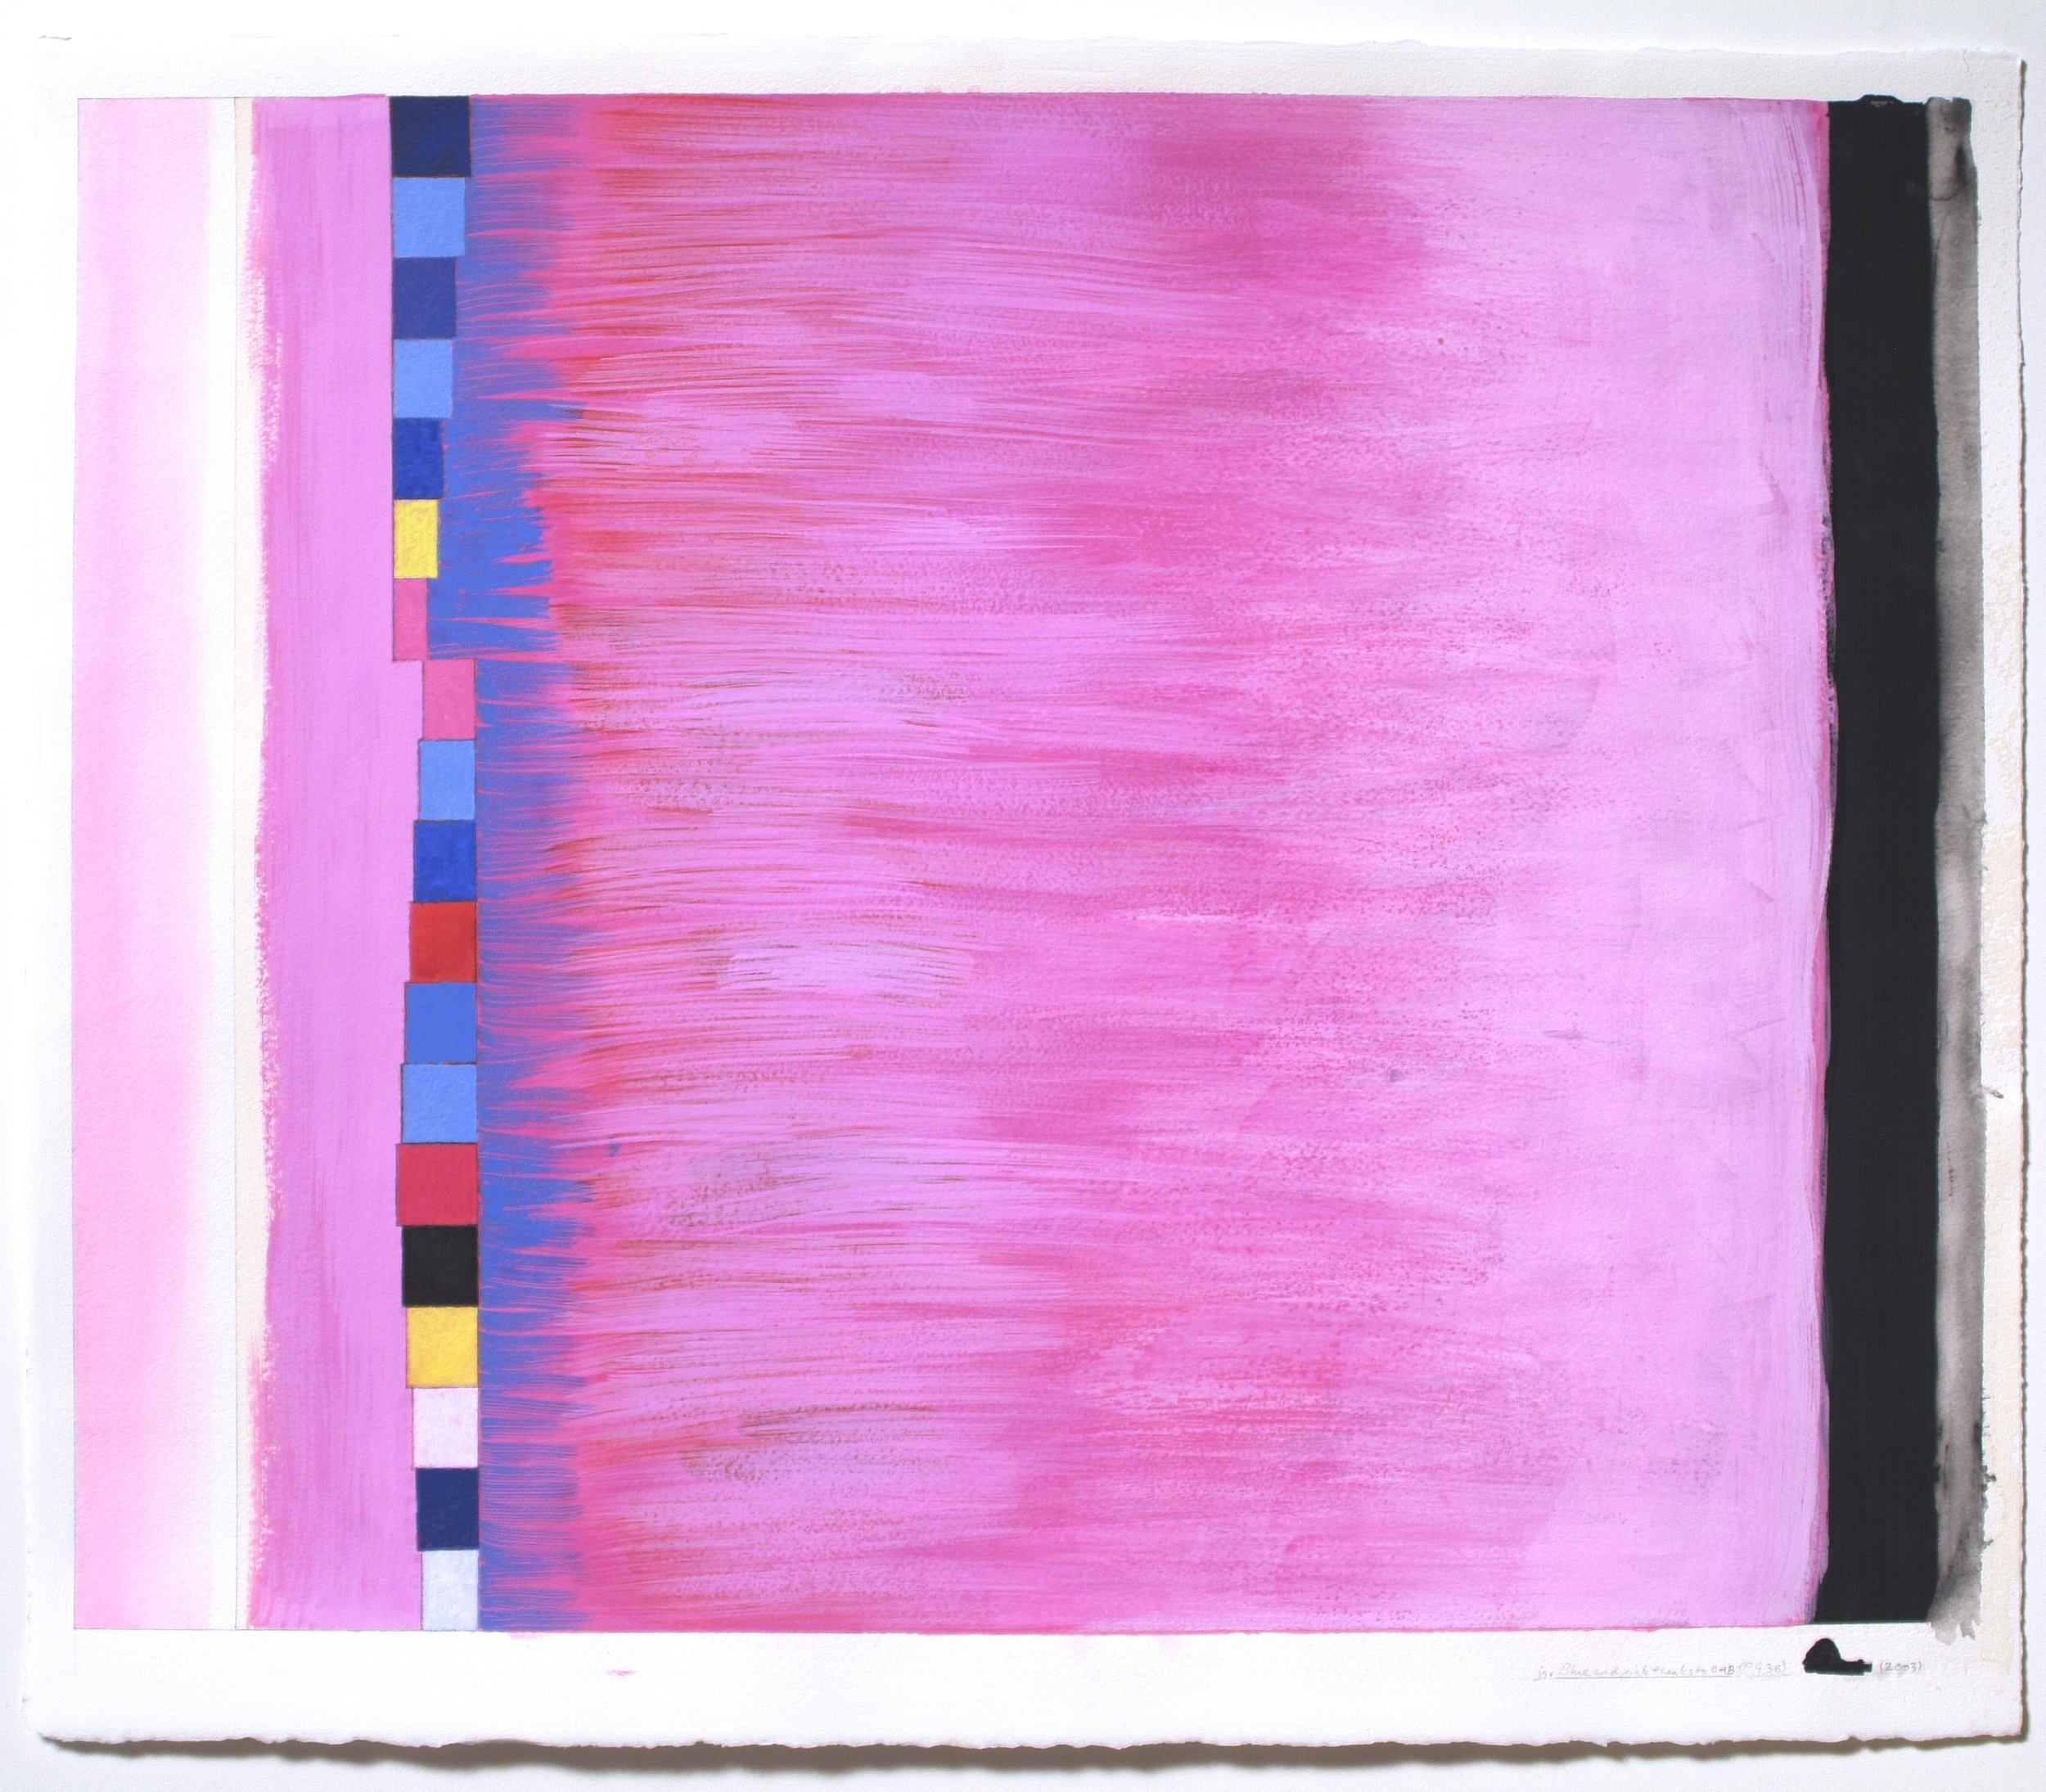 """Blue and Pink Thanks to OAB (PG36), 2003, gouache on paper, 20 3/16""""x25 1/8"""" (image), 22""""x26 5/16""""(paper)"""